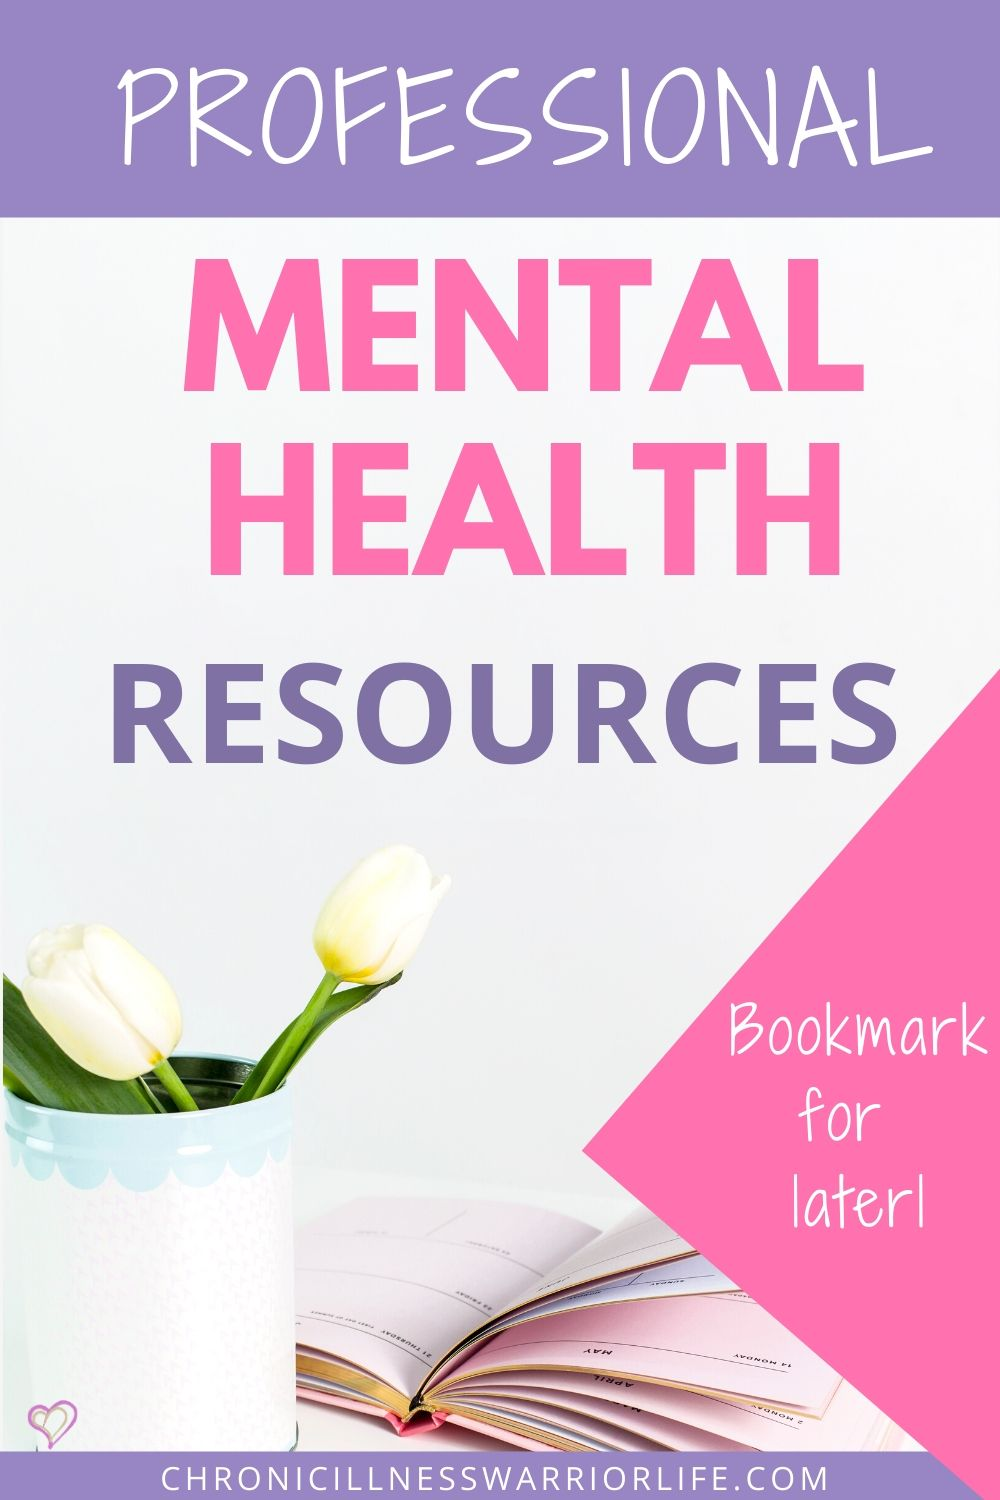 Be careful what health sources you trust. Don't take advice for your mental health unless it's from licensed healthcare professionals. Bookmark this page for future reference next time you need it. #health #mentalhealth #lifetips via @chronicillnesswarriorlife